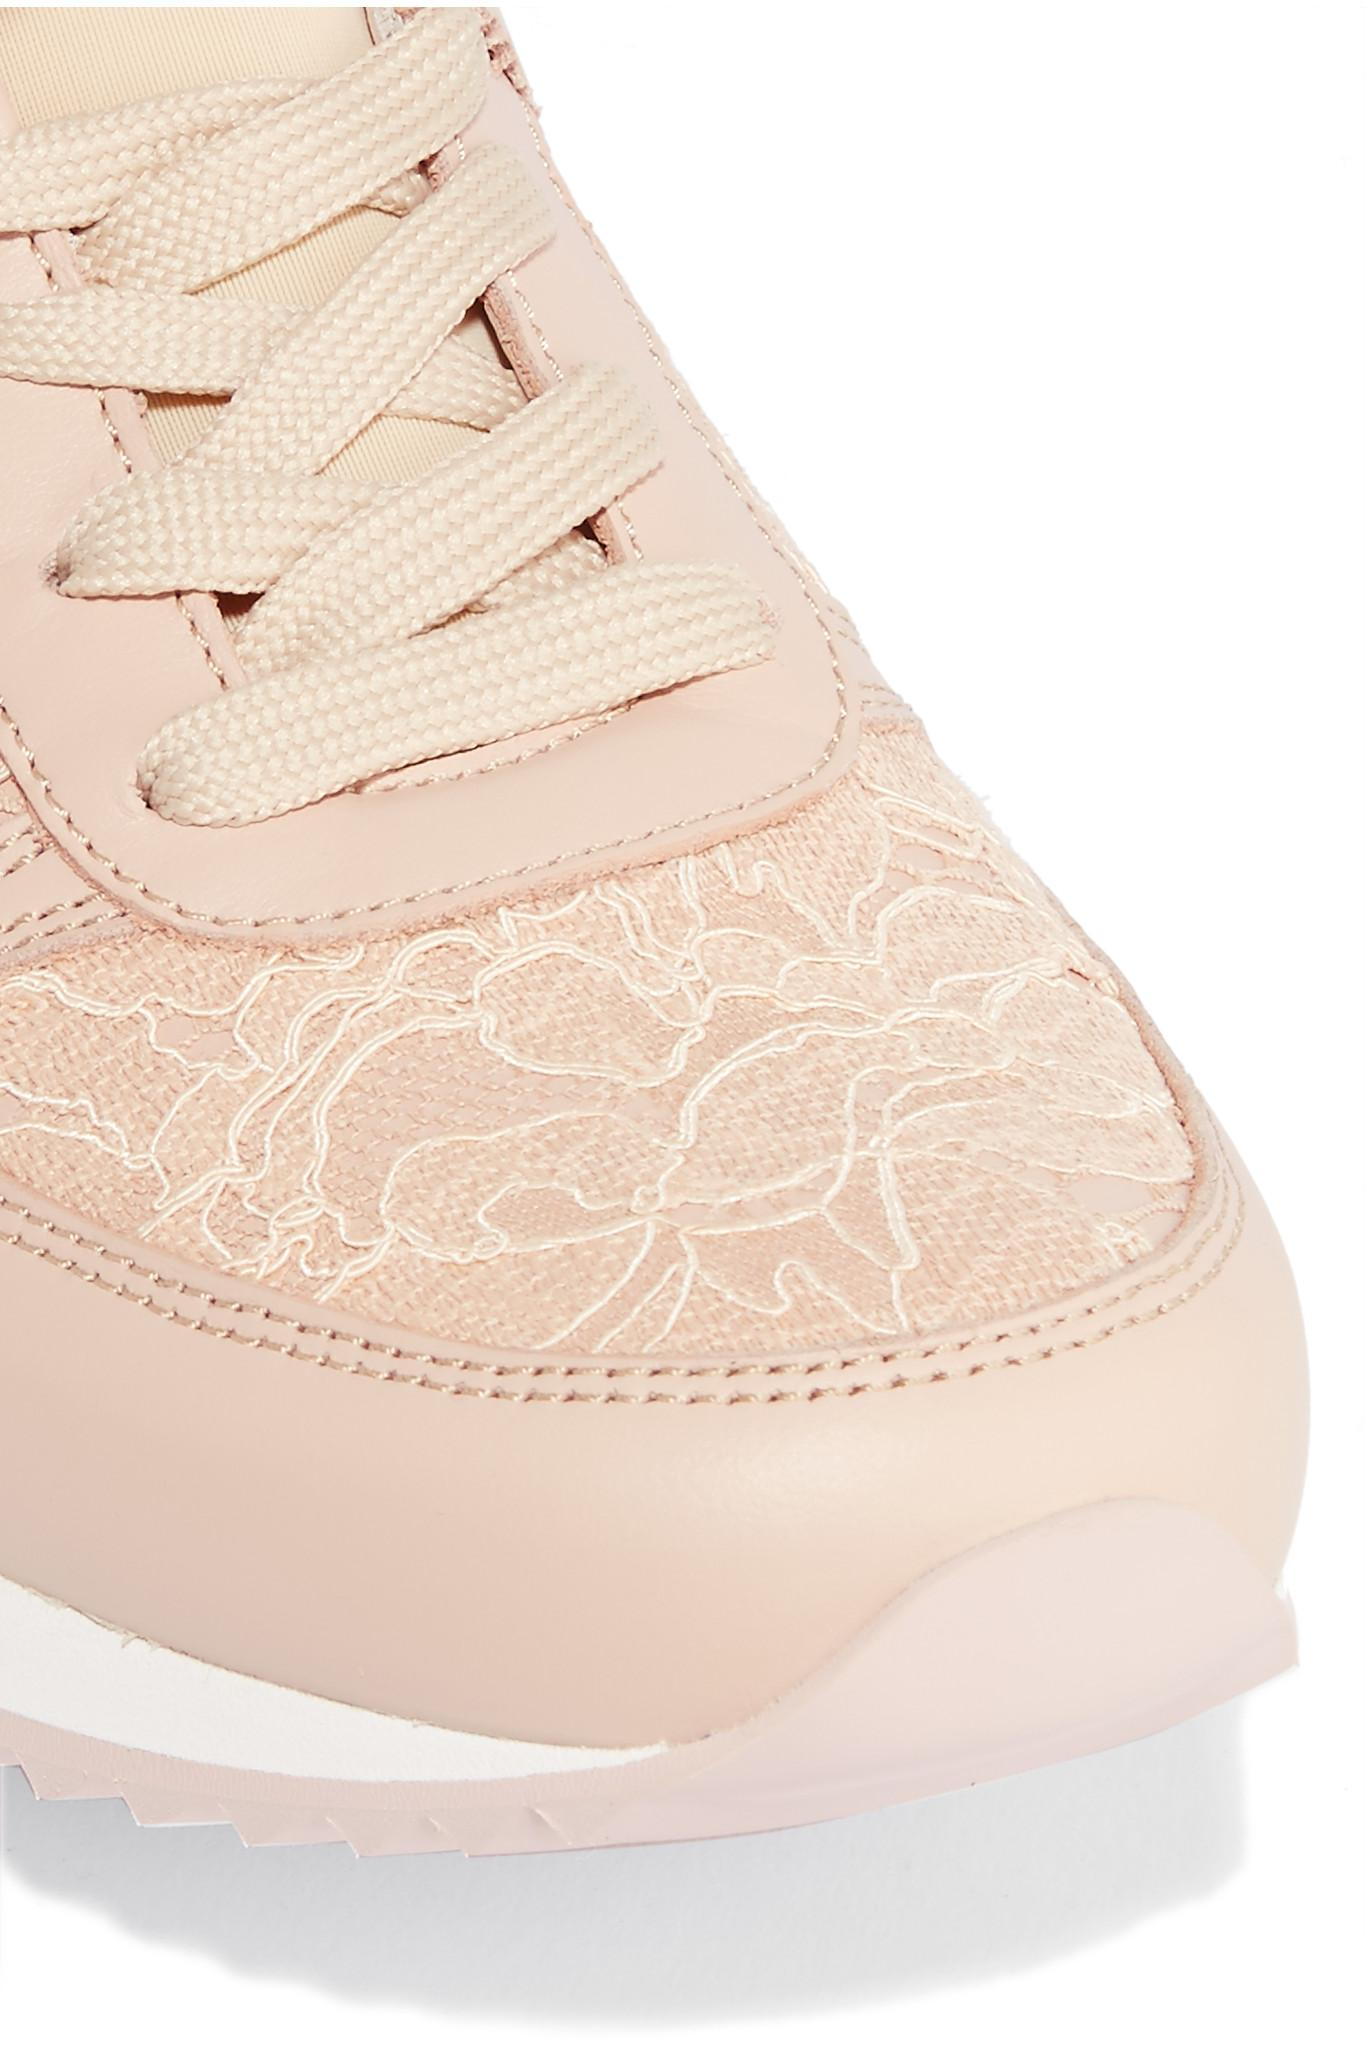 Dolce & Gabbana Leather in Antique Rose (Pink)